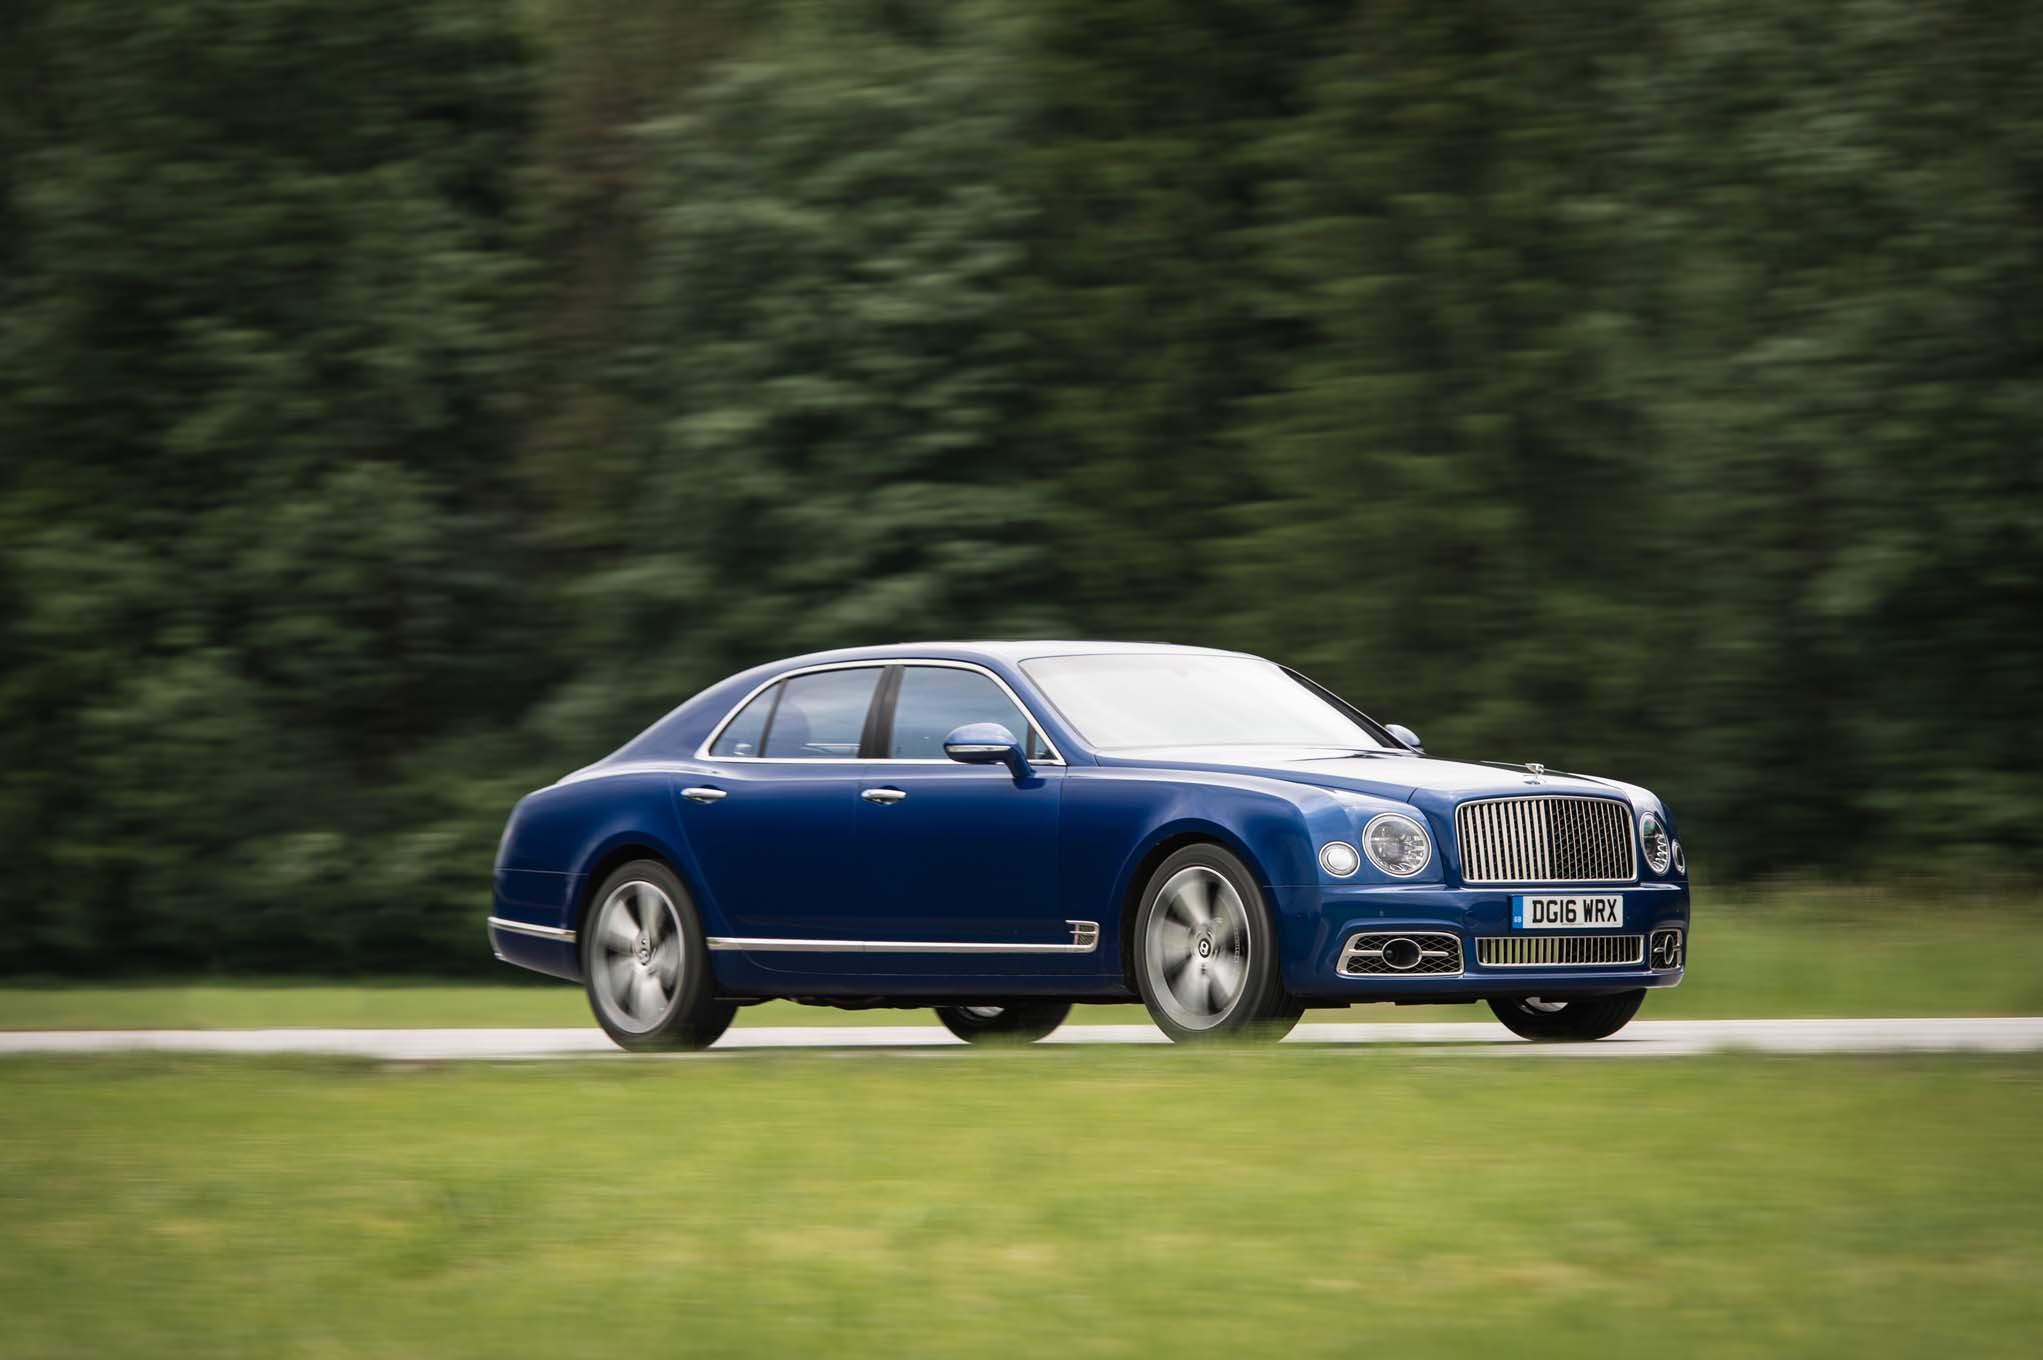 2017 Bentley Mulsanne Refreshed Adds Extended Wheelbase